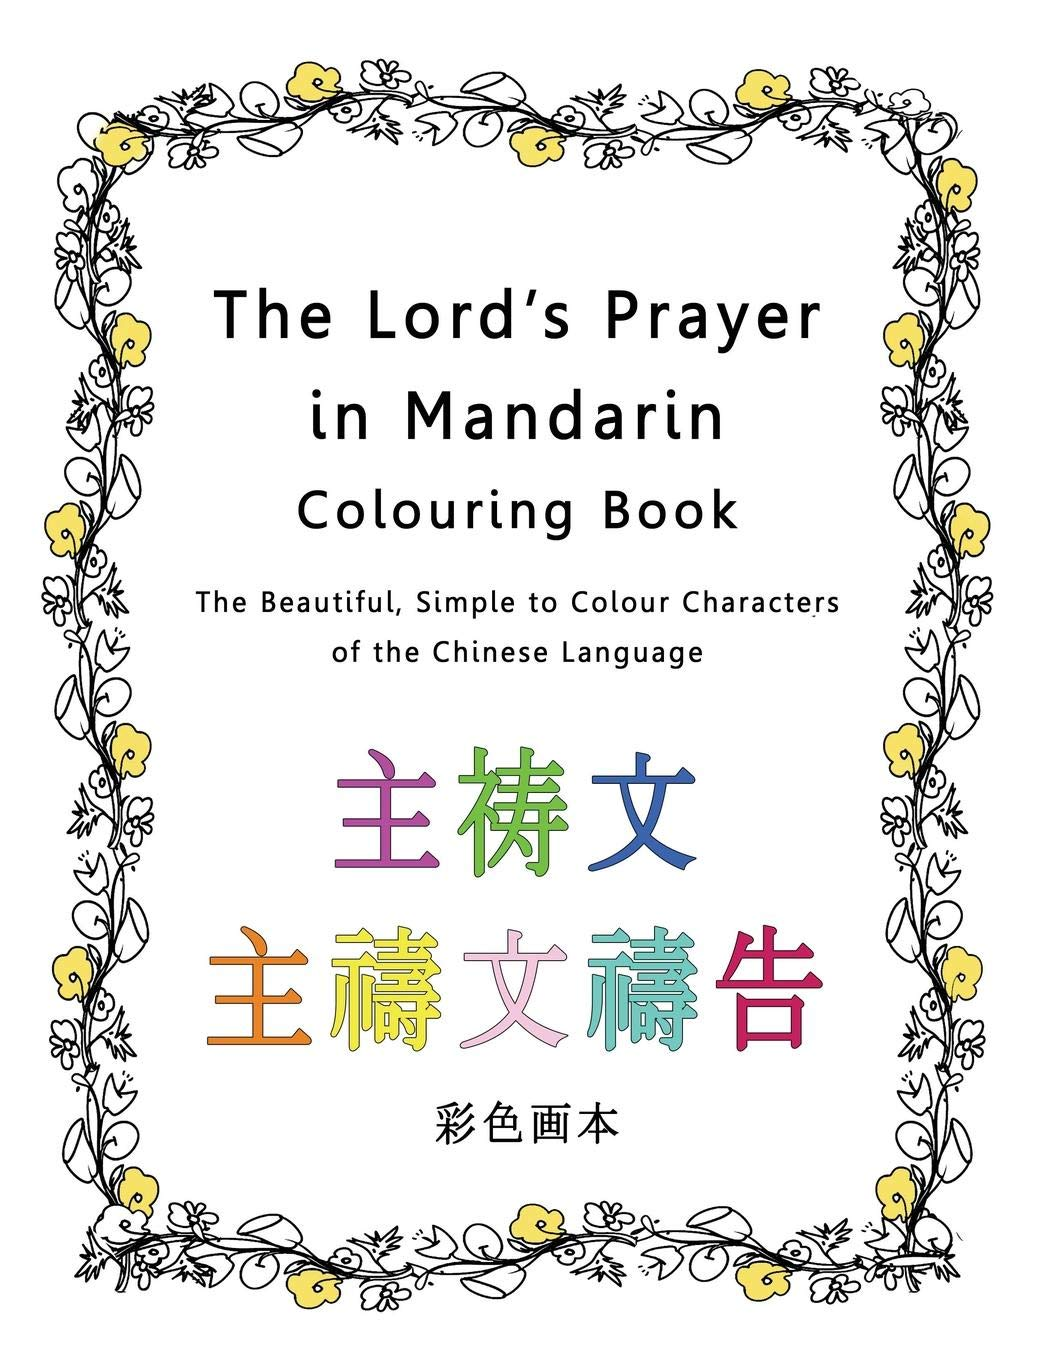 The Lord's Prayer in Mandarin Colouring Book: The Beautiful, Simple to Colour Characters of the Chinese Language by Magdalene Press